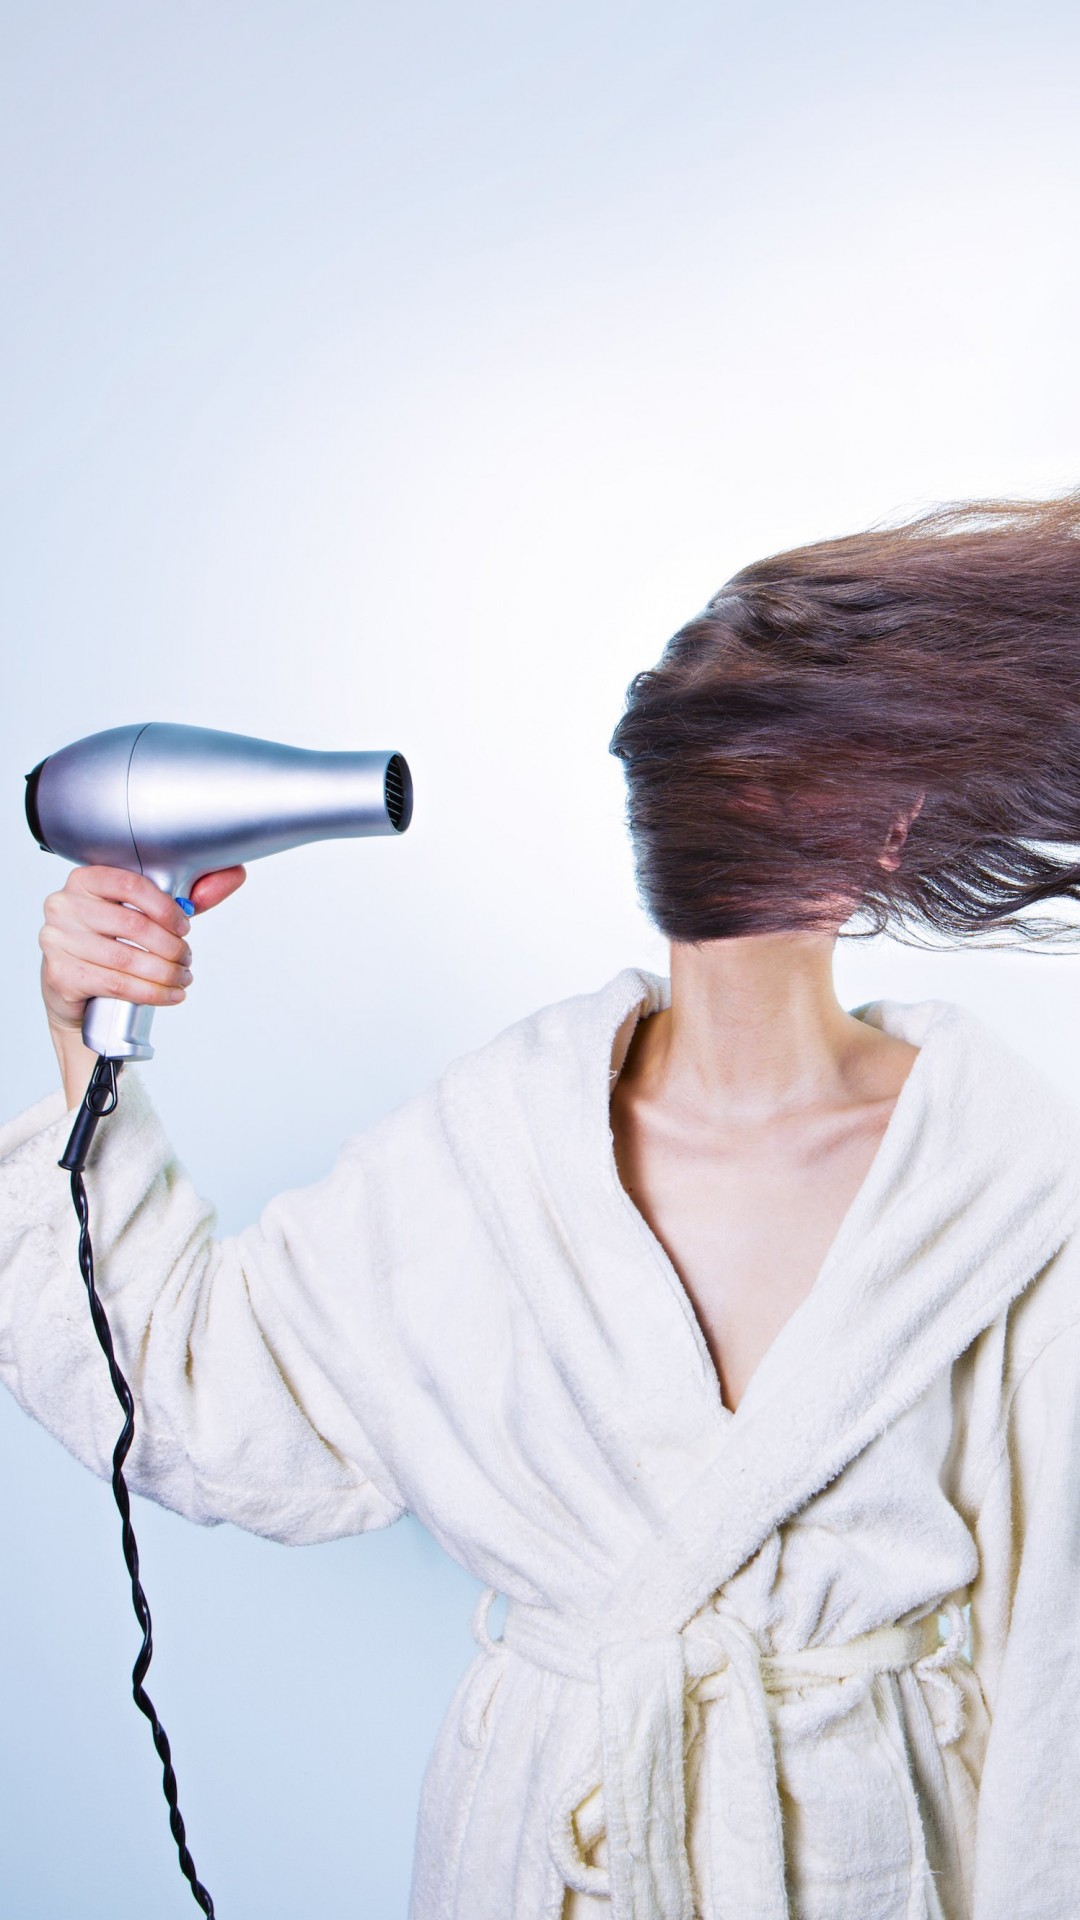 Powerful Hair Dryer Wallpaper for HTC One